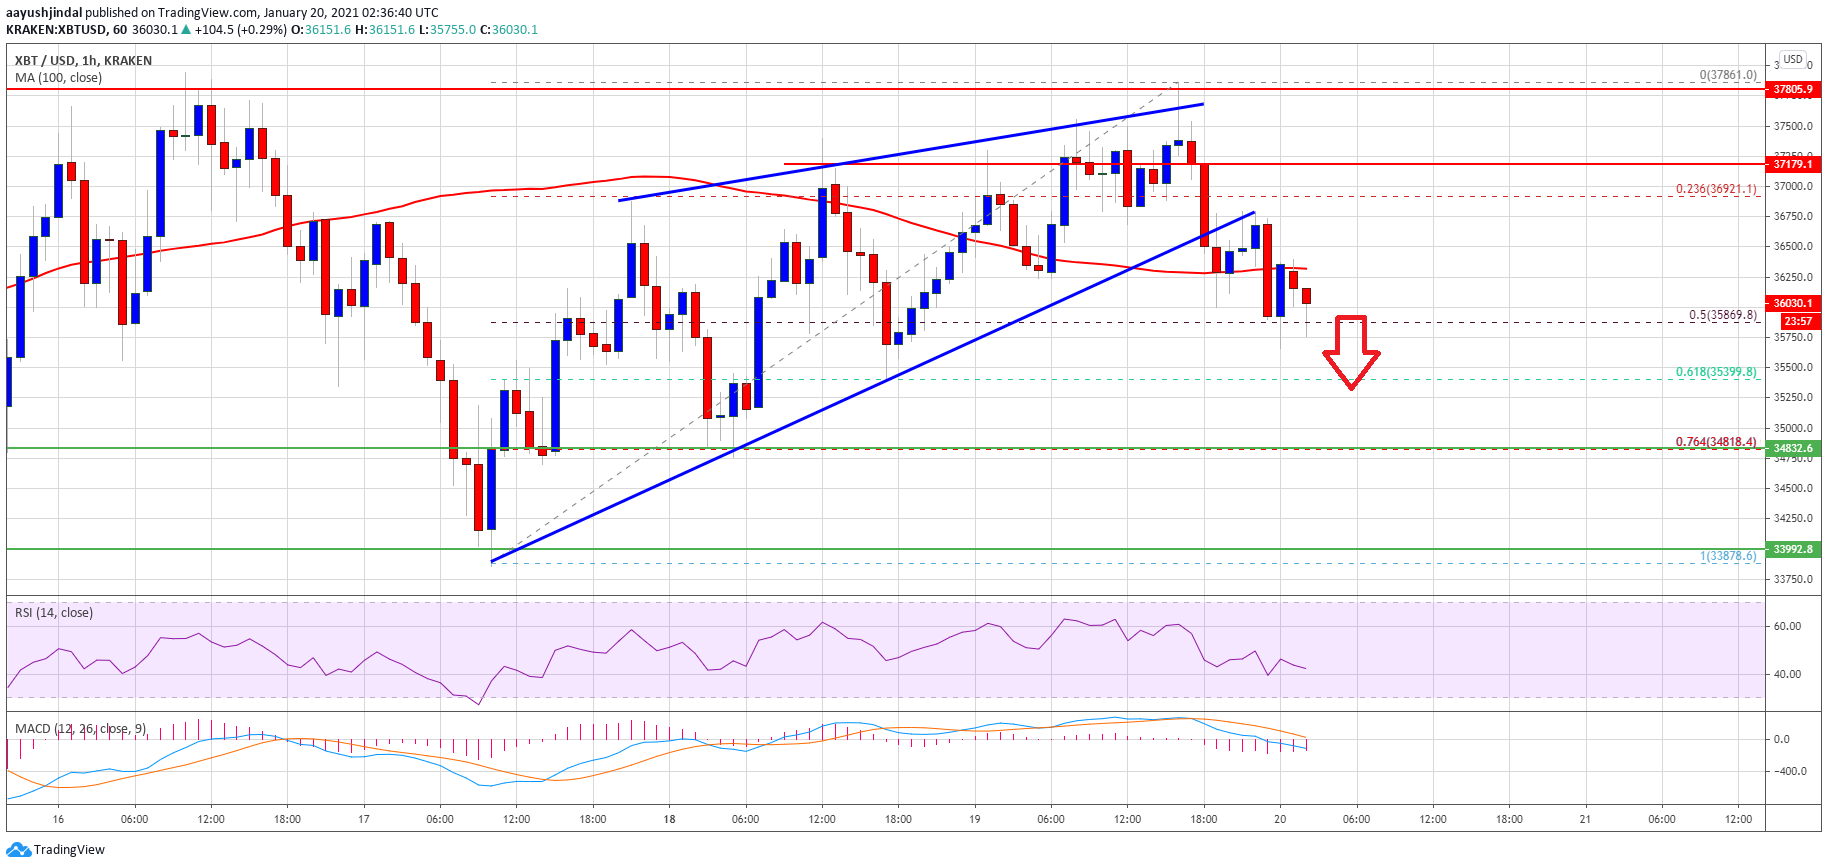 TA: Bitcoin Signaling Further Correction, Why BTC Could Revisit $33K